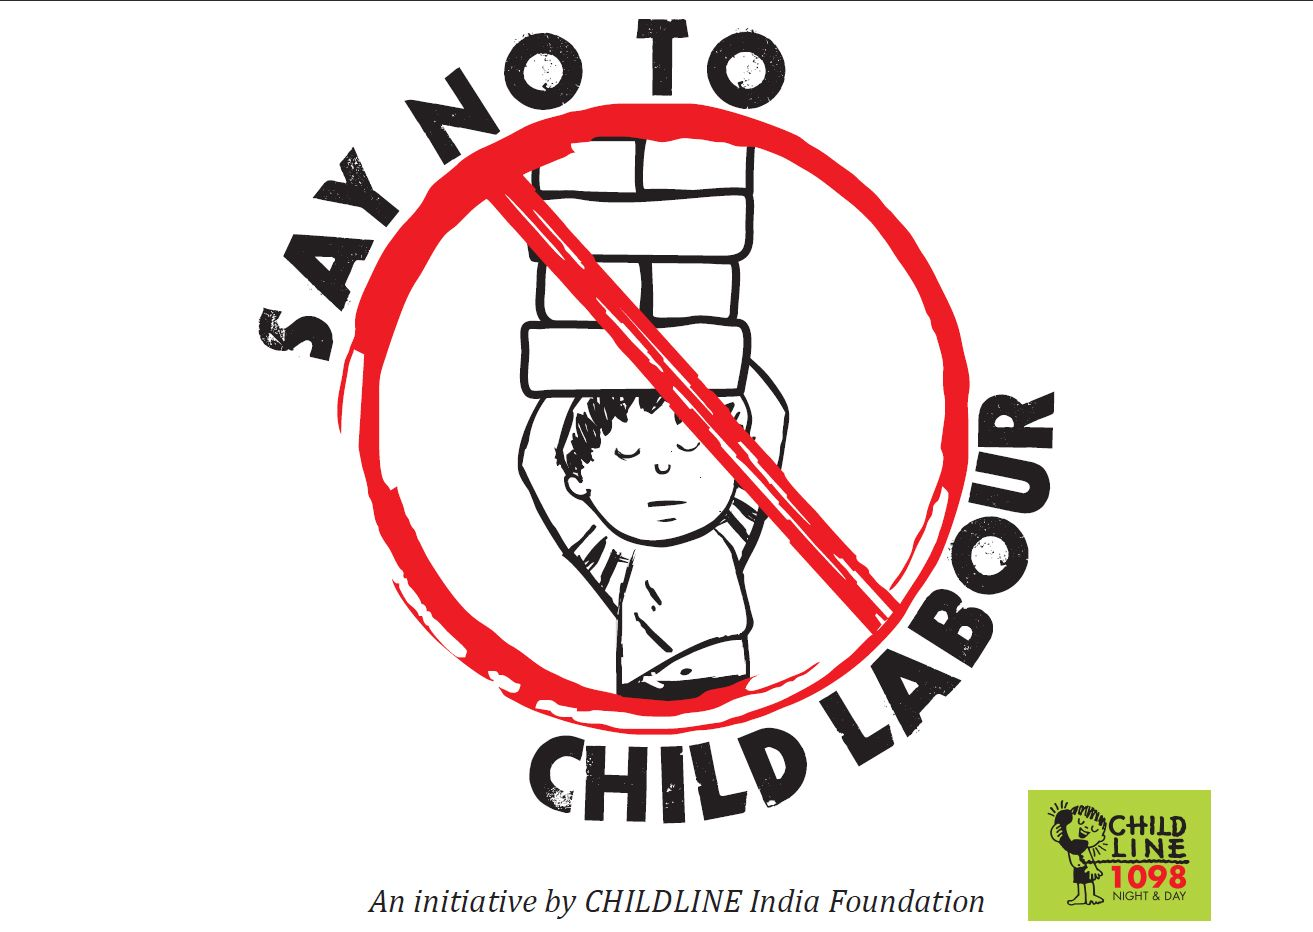 child labour in 61591 accounts for the second highest child labor in a survey analysis